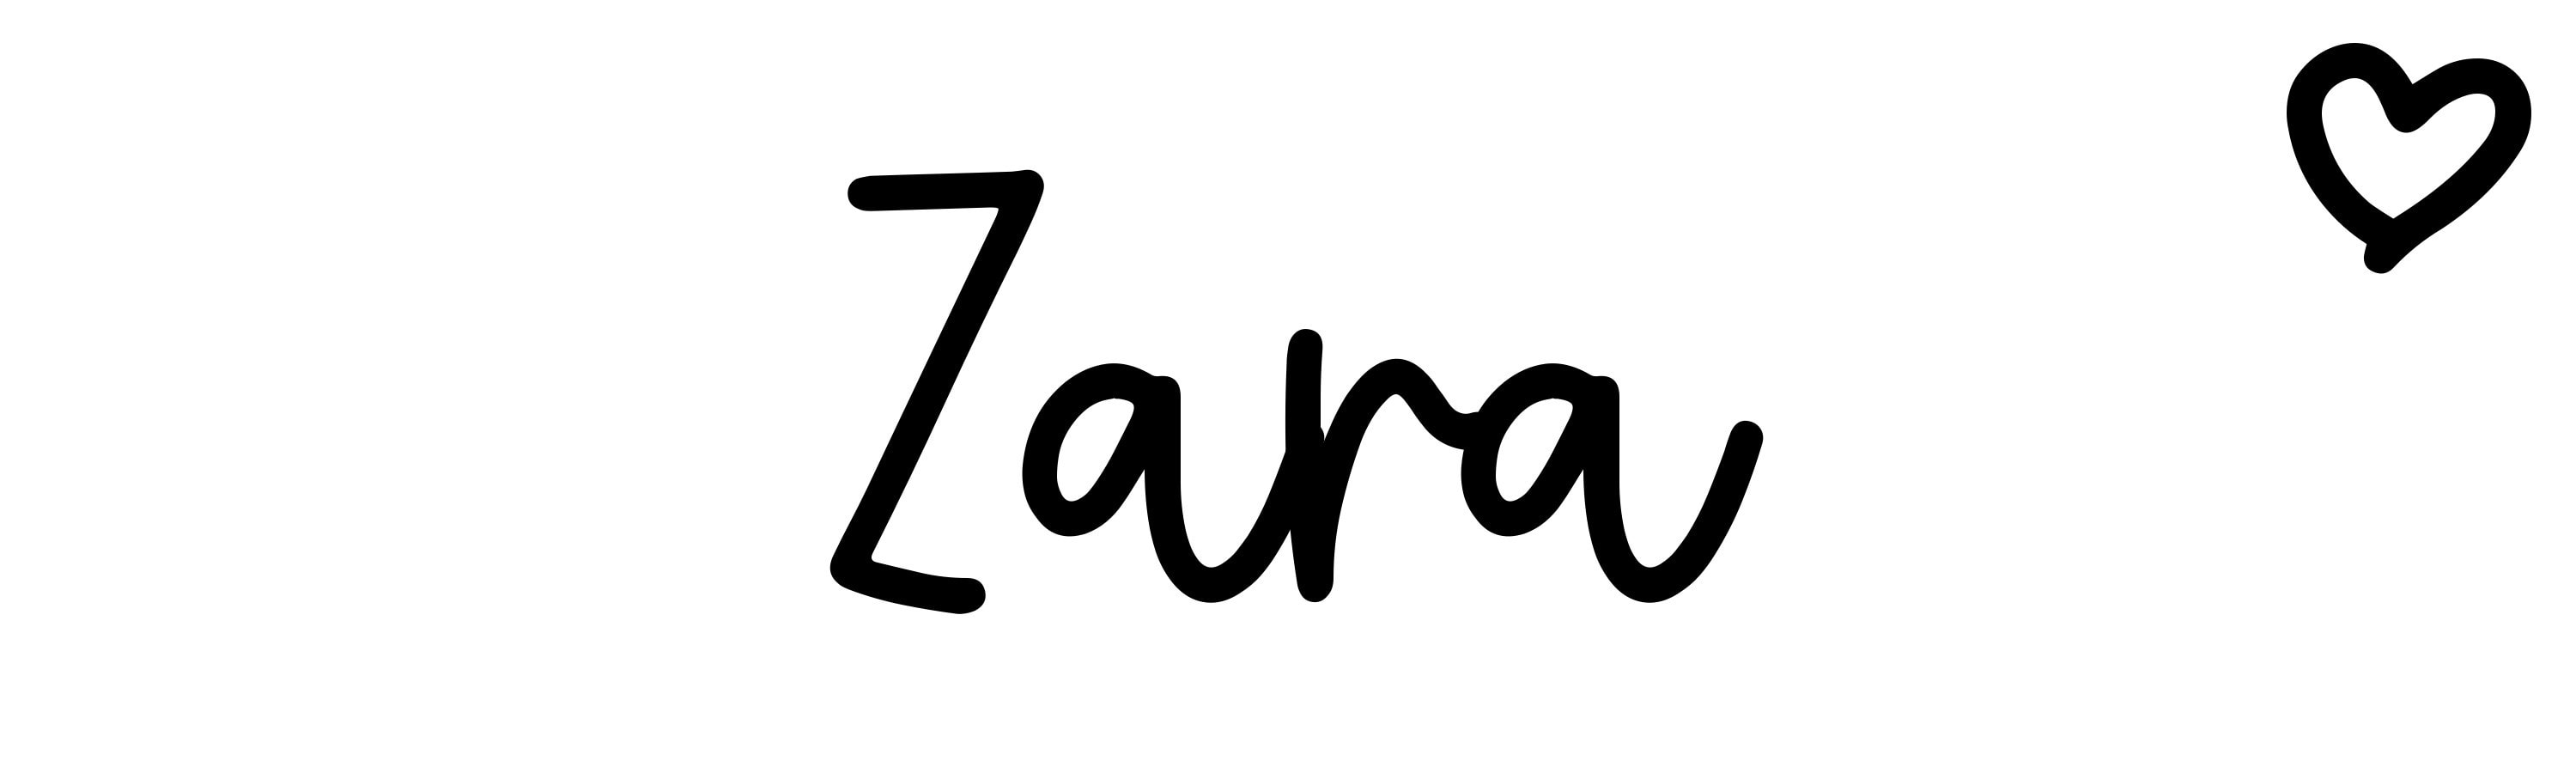 About the baby name Zara - Click Baby Names